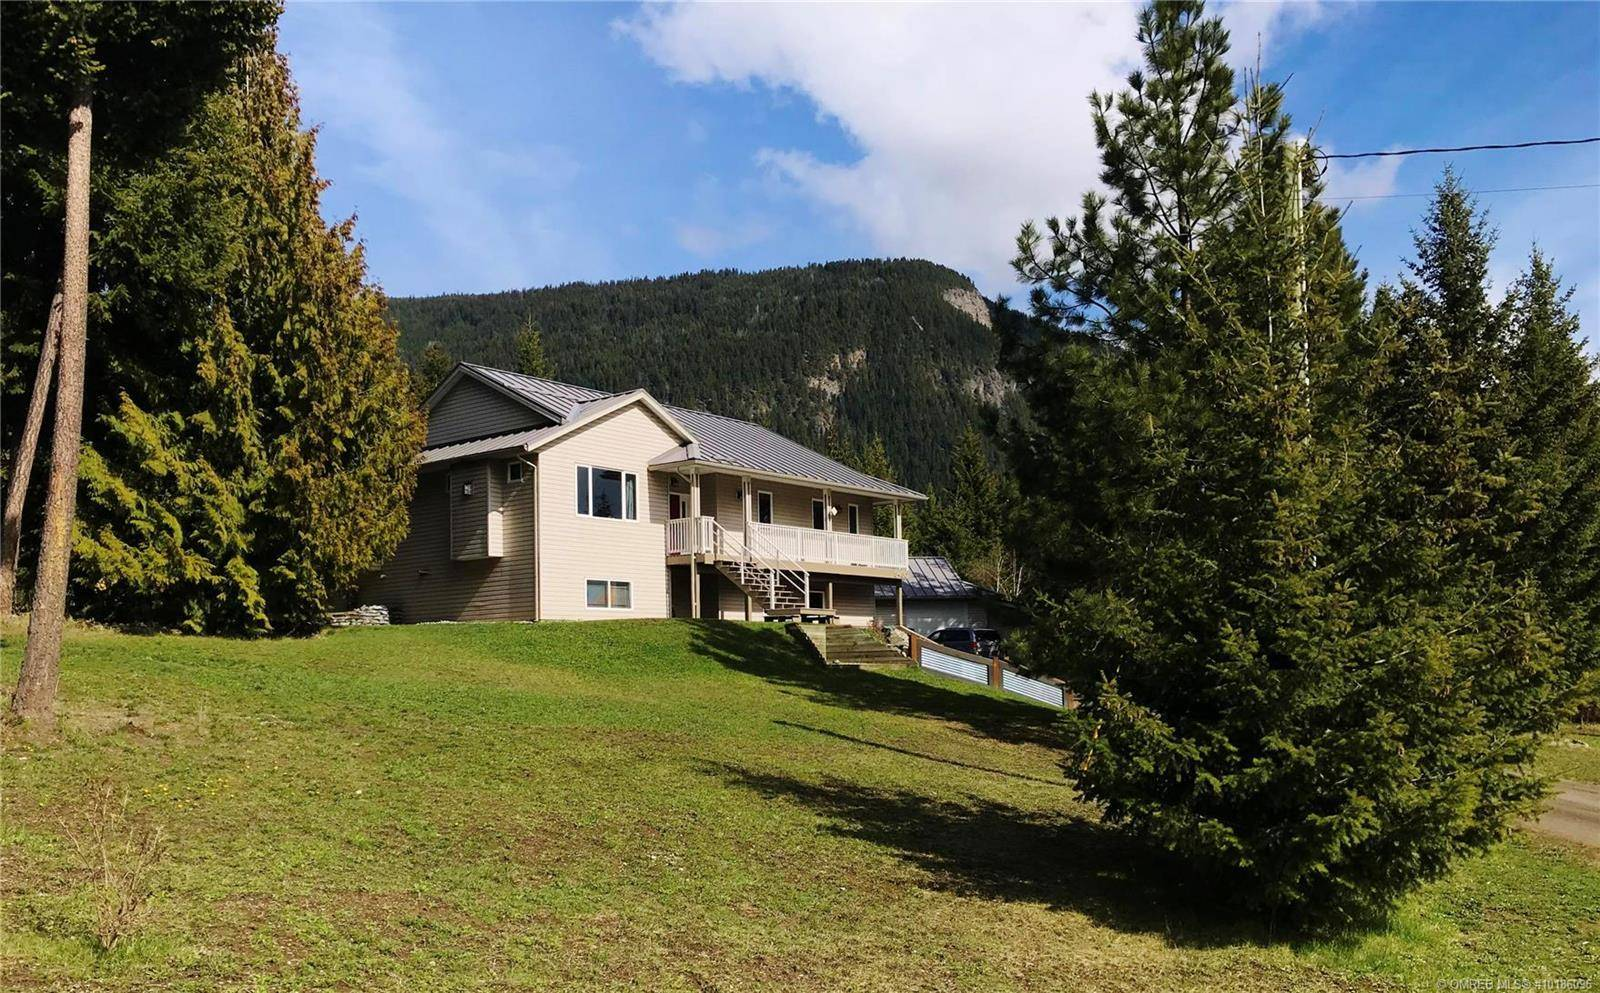 Home for sale at 3430 Roberge Rd Tappen British Columbia - MLS: 10186096